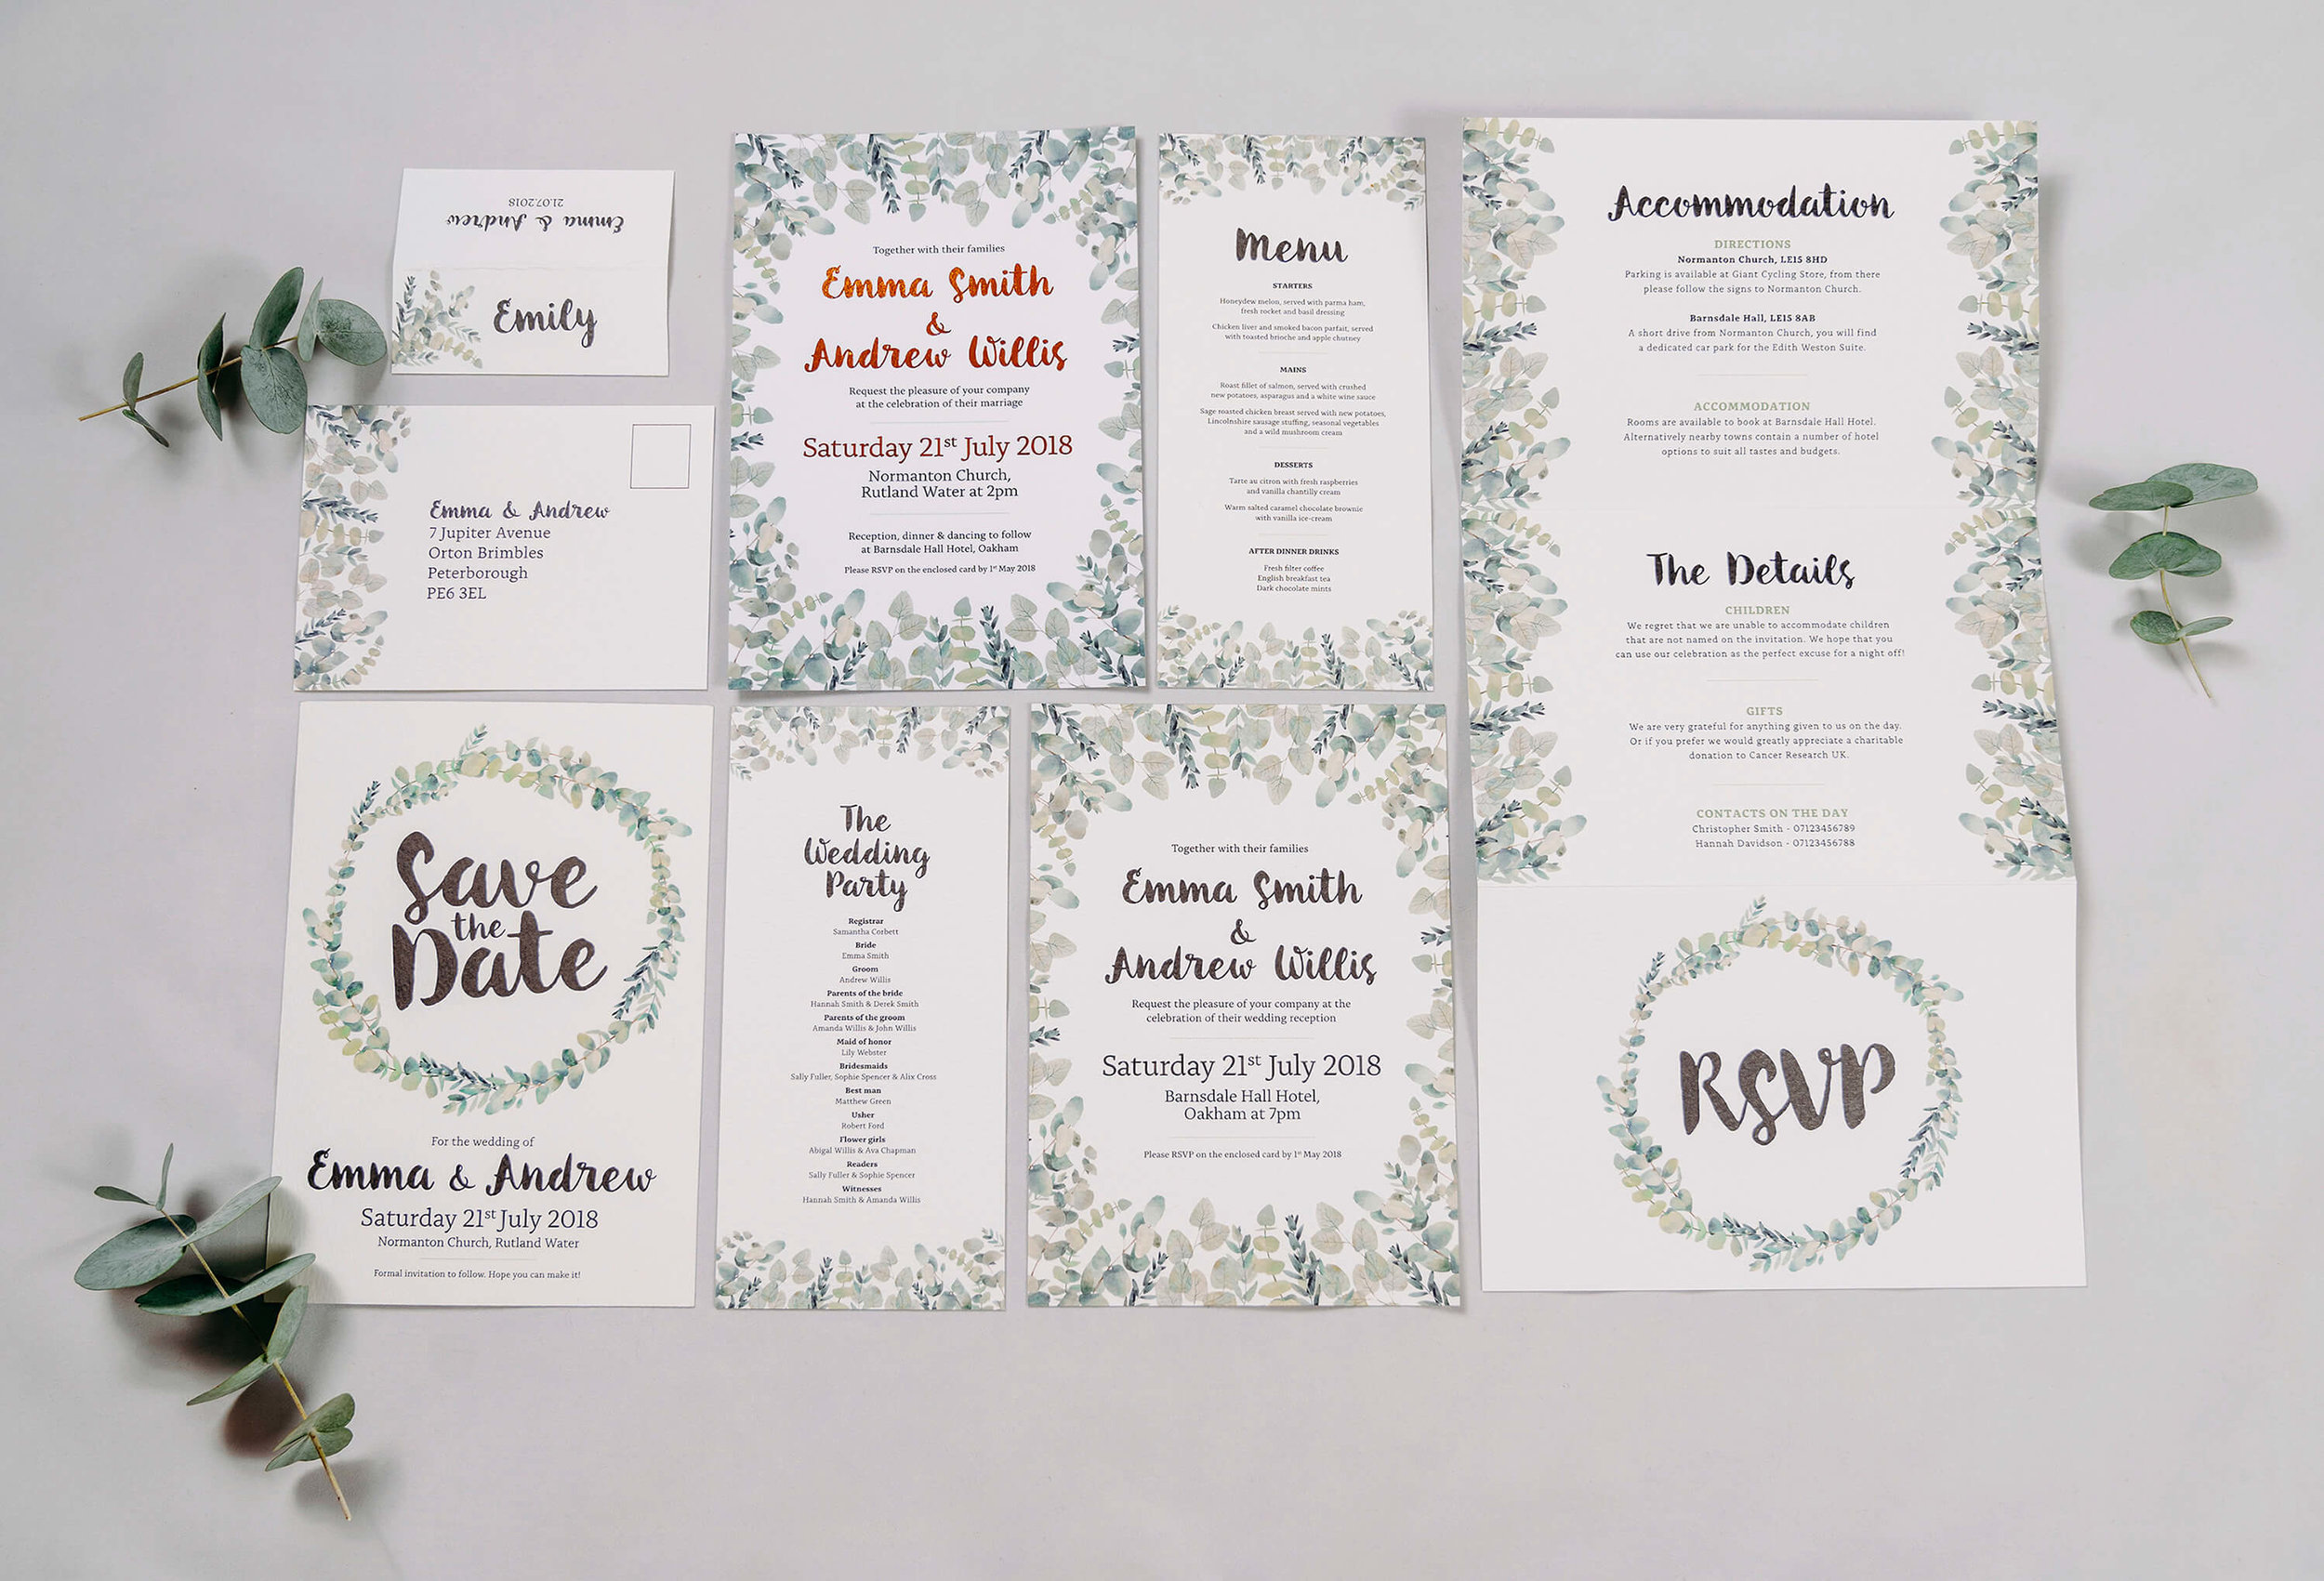 Rustic Green & White Eucalyptus Wedding Invitation Stationery Suite Including Save The Date Card, Digital Foiled Invitations, Concertina Invitation, RSVP Postcard, Place Name Card, Order of Service & Menu.